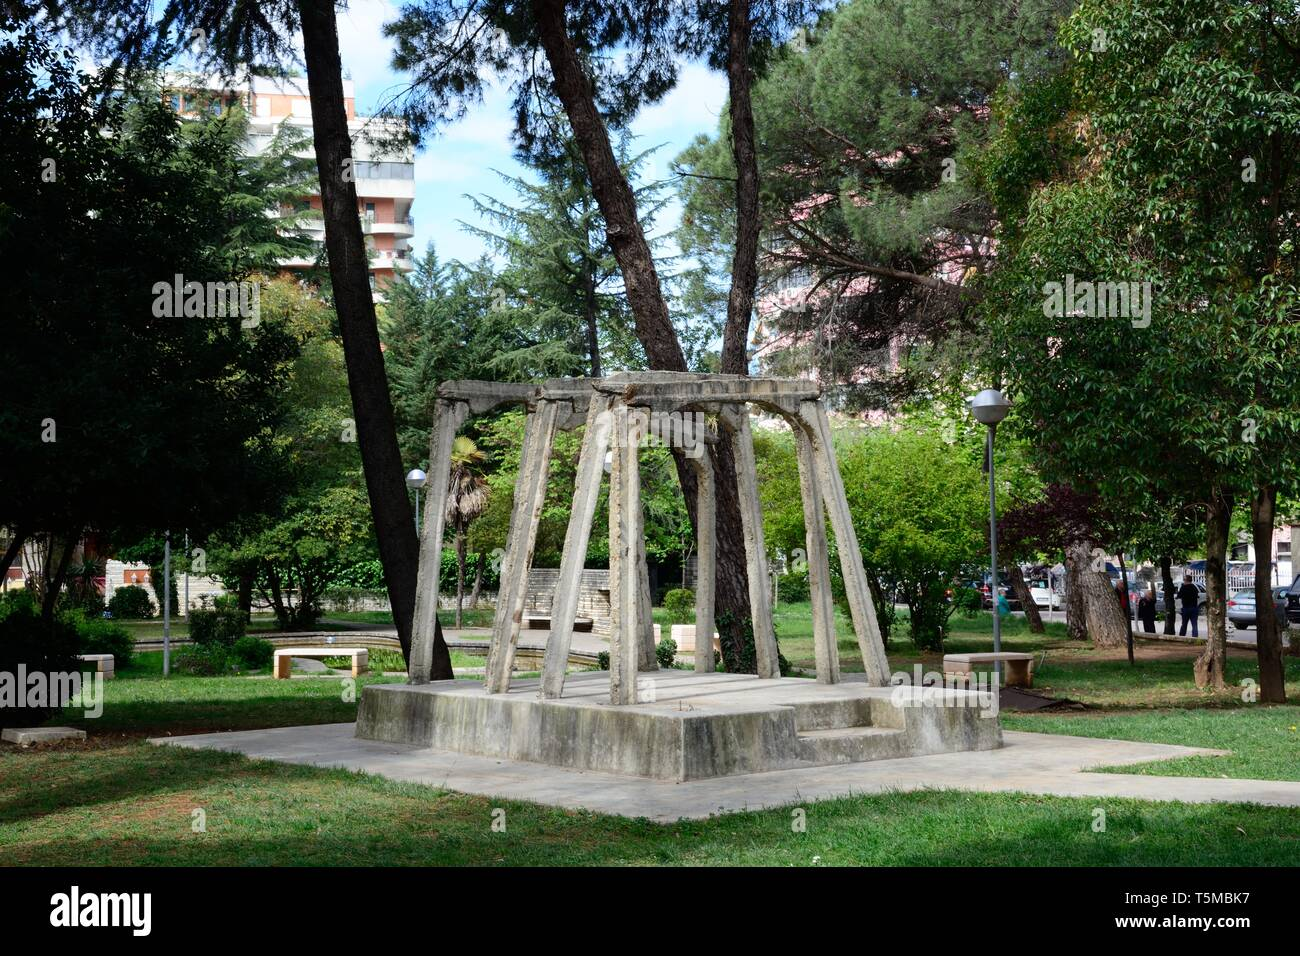 Concrete supports from the gallery of the notorious mine of Spac a forced labour camp for political prisoners from 1968 - 1990 Tirana Albania - Stock Image